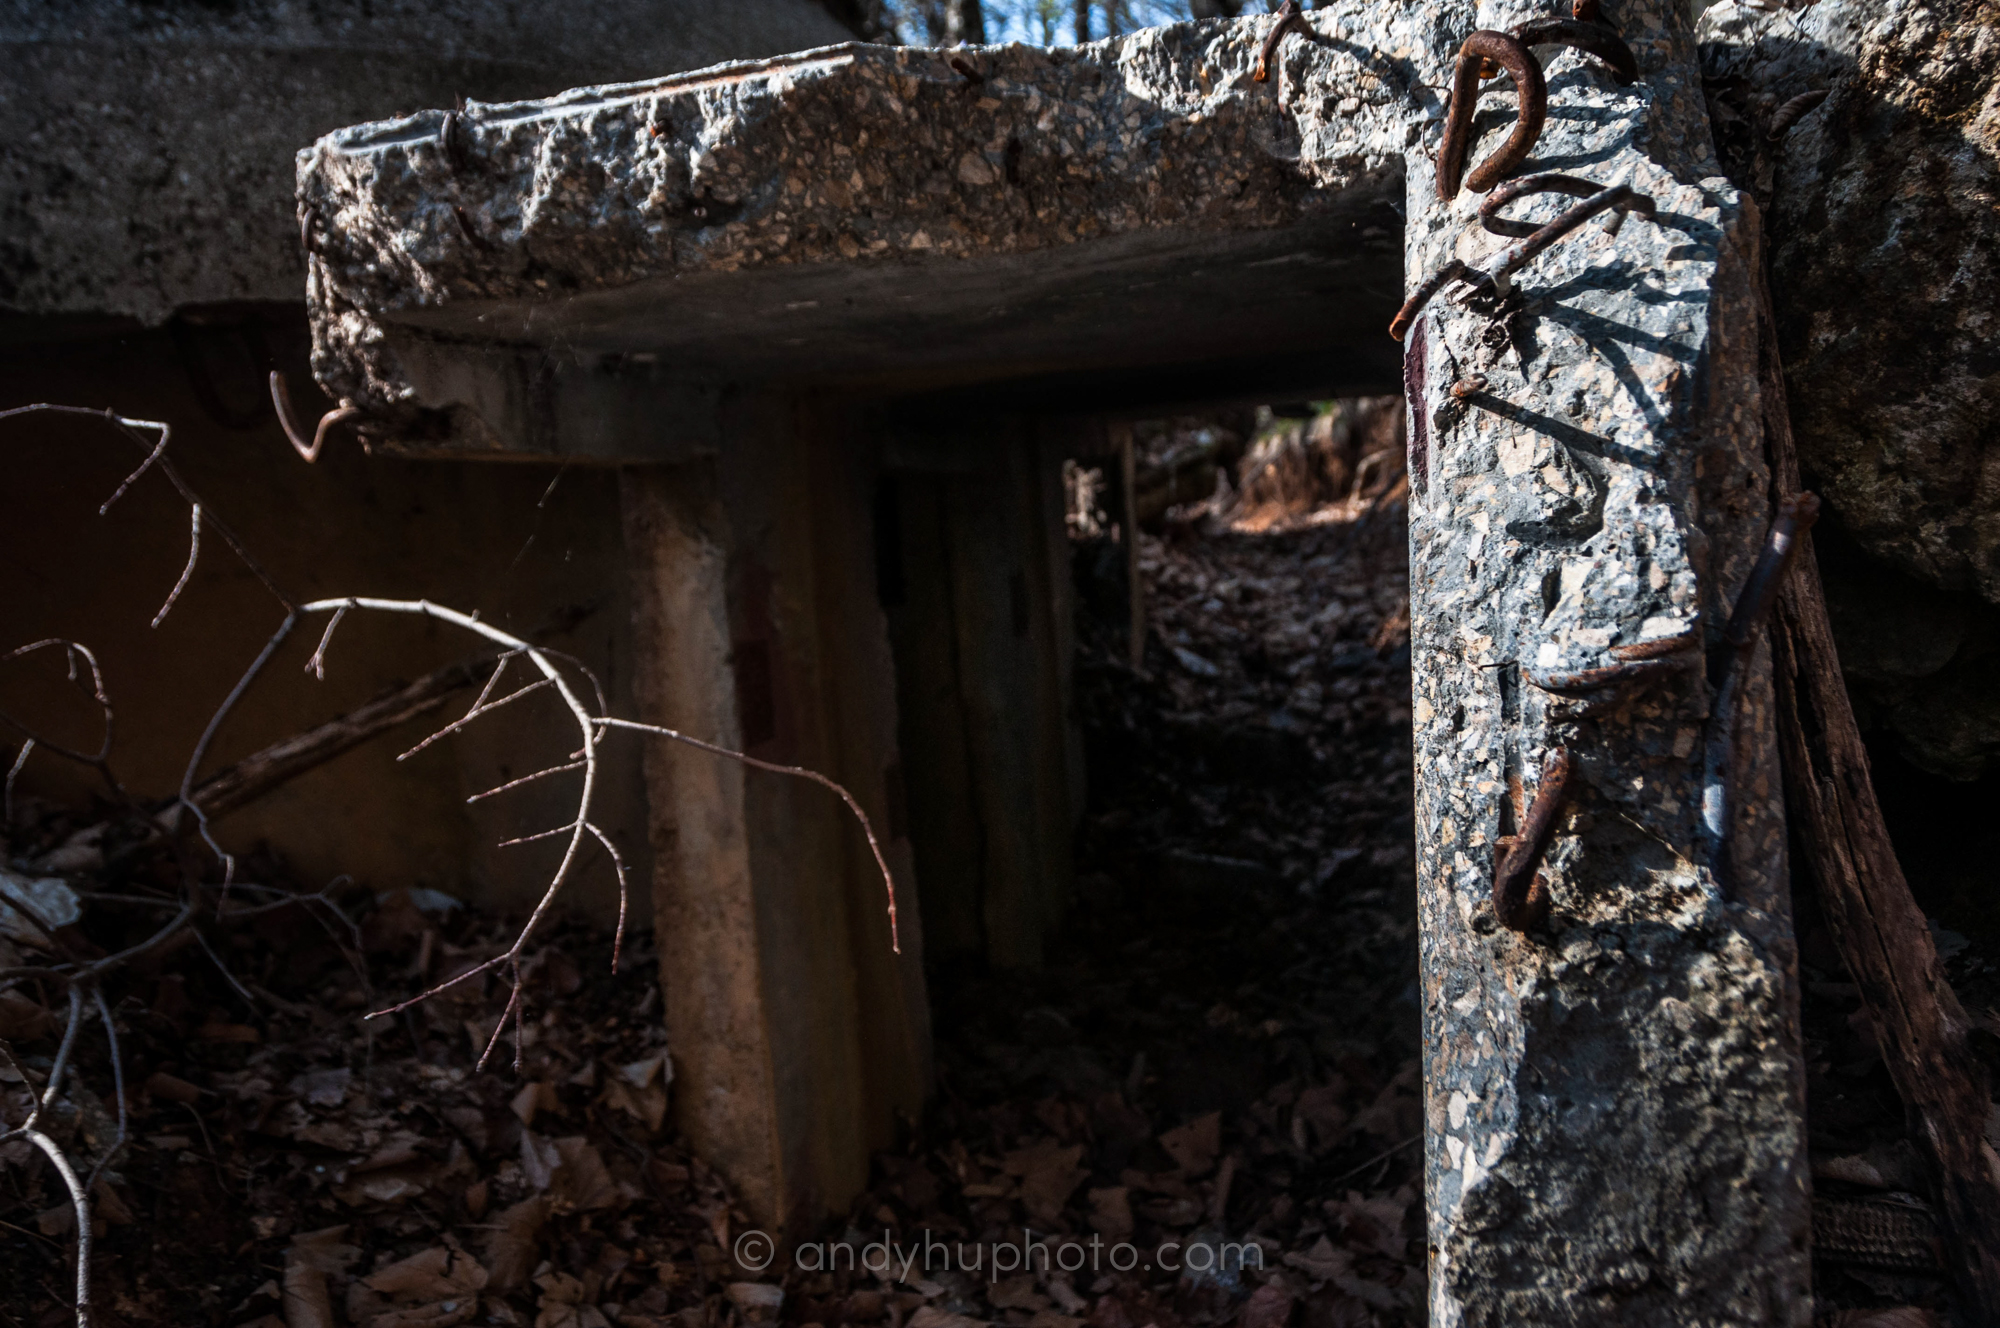 Entering a ruined bunker